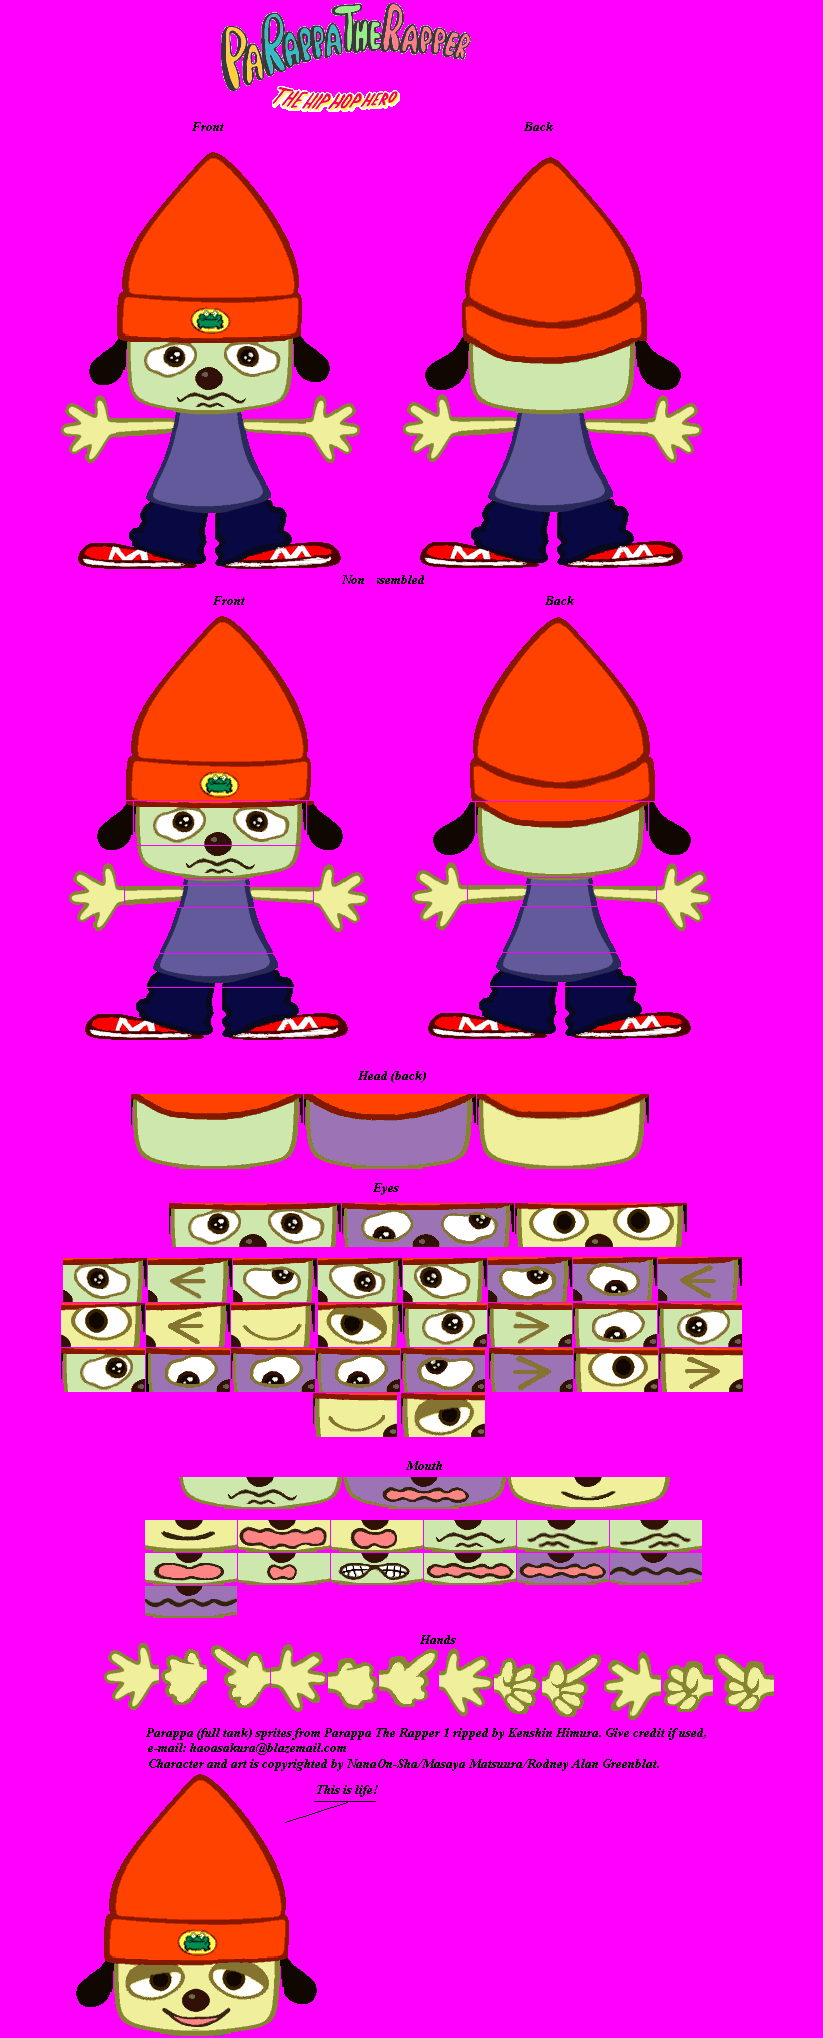 PaRappa the Rapper - PaRappa (Full Tank)